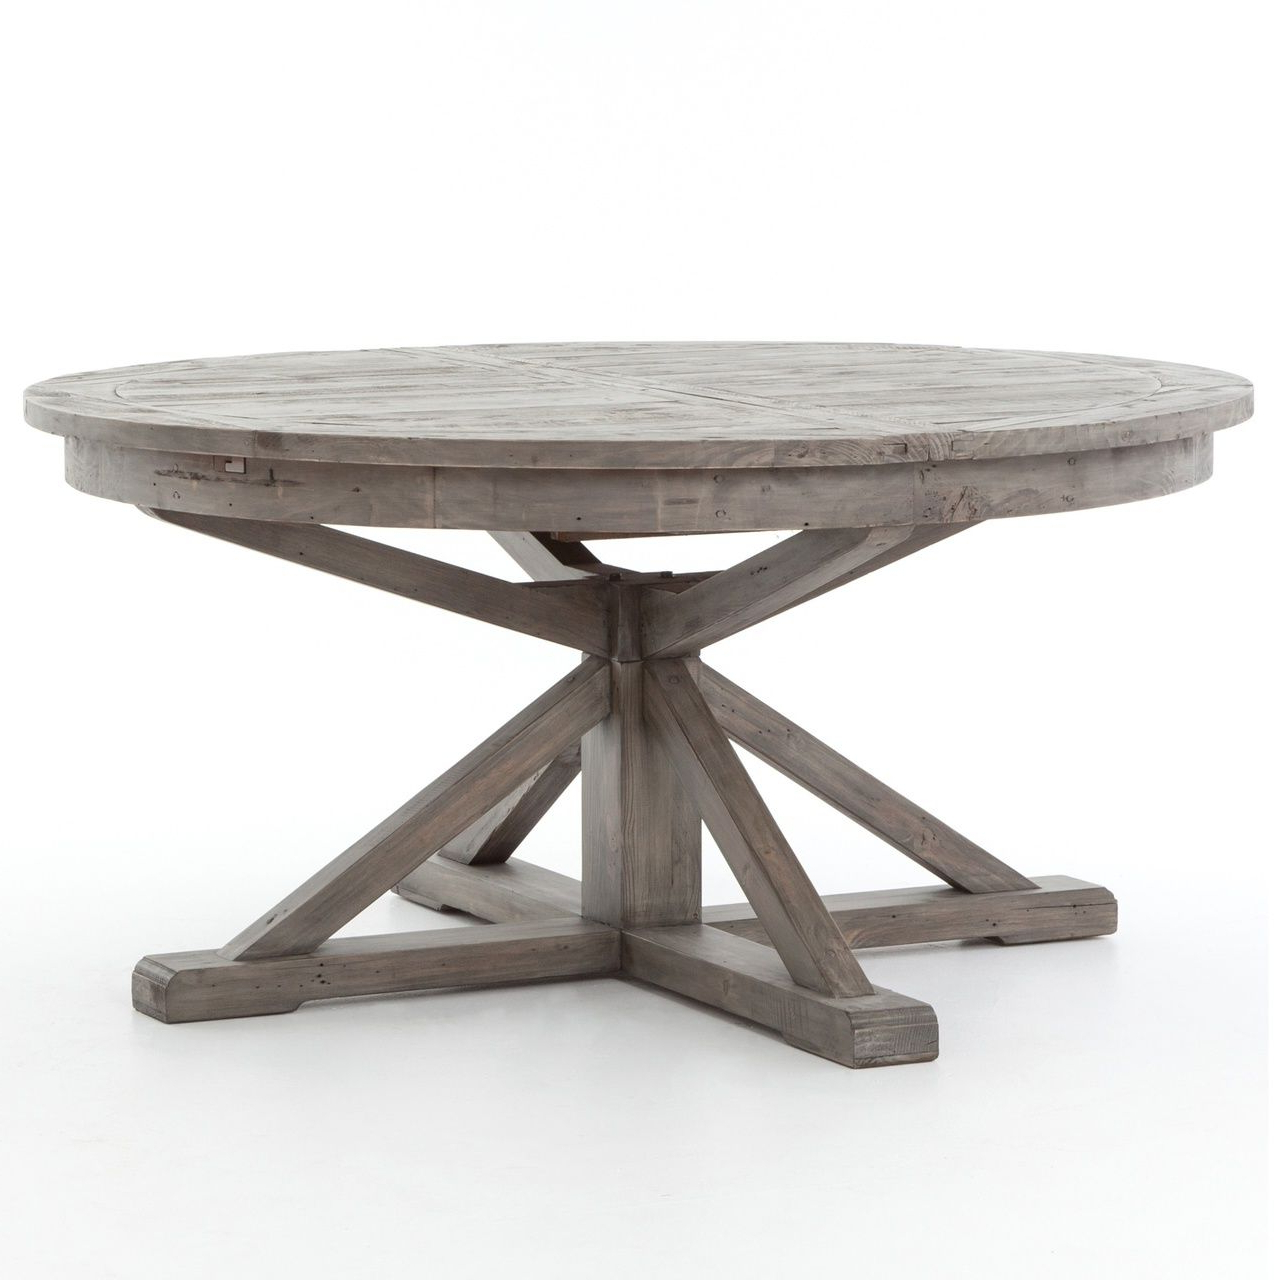 "Blackened Oak Benchwright Extending Dining Tables throughout Well-liked Cintra Reclaimed Wood Extending Round Dining Table 63""- Gray"